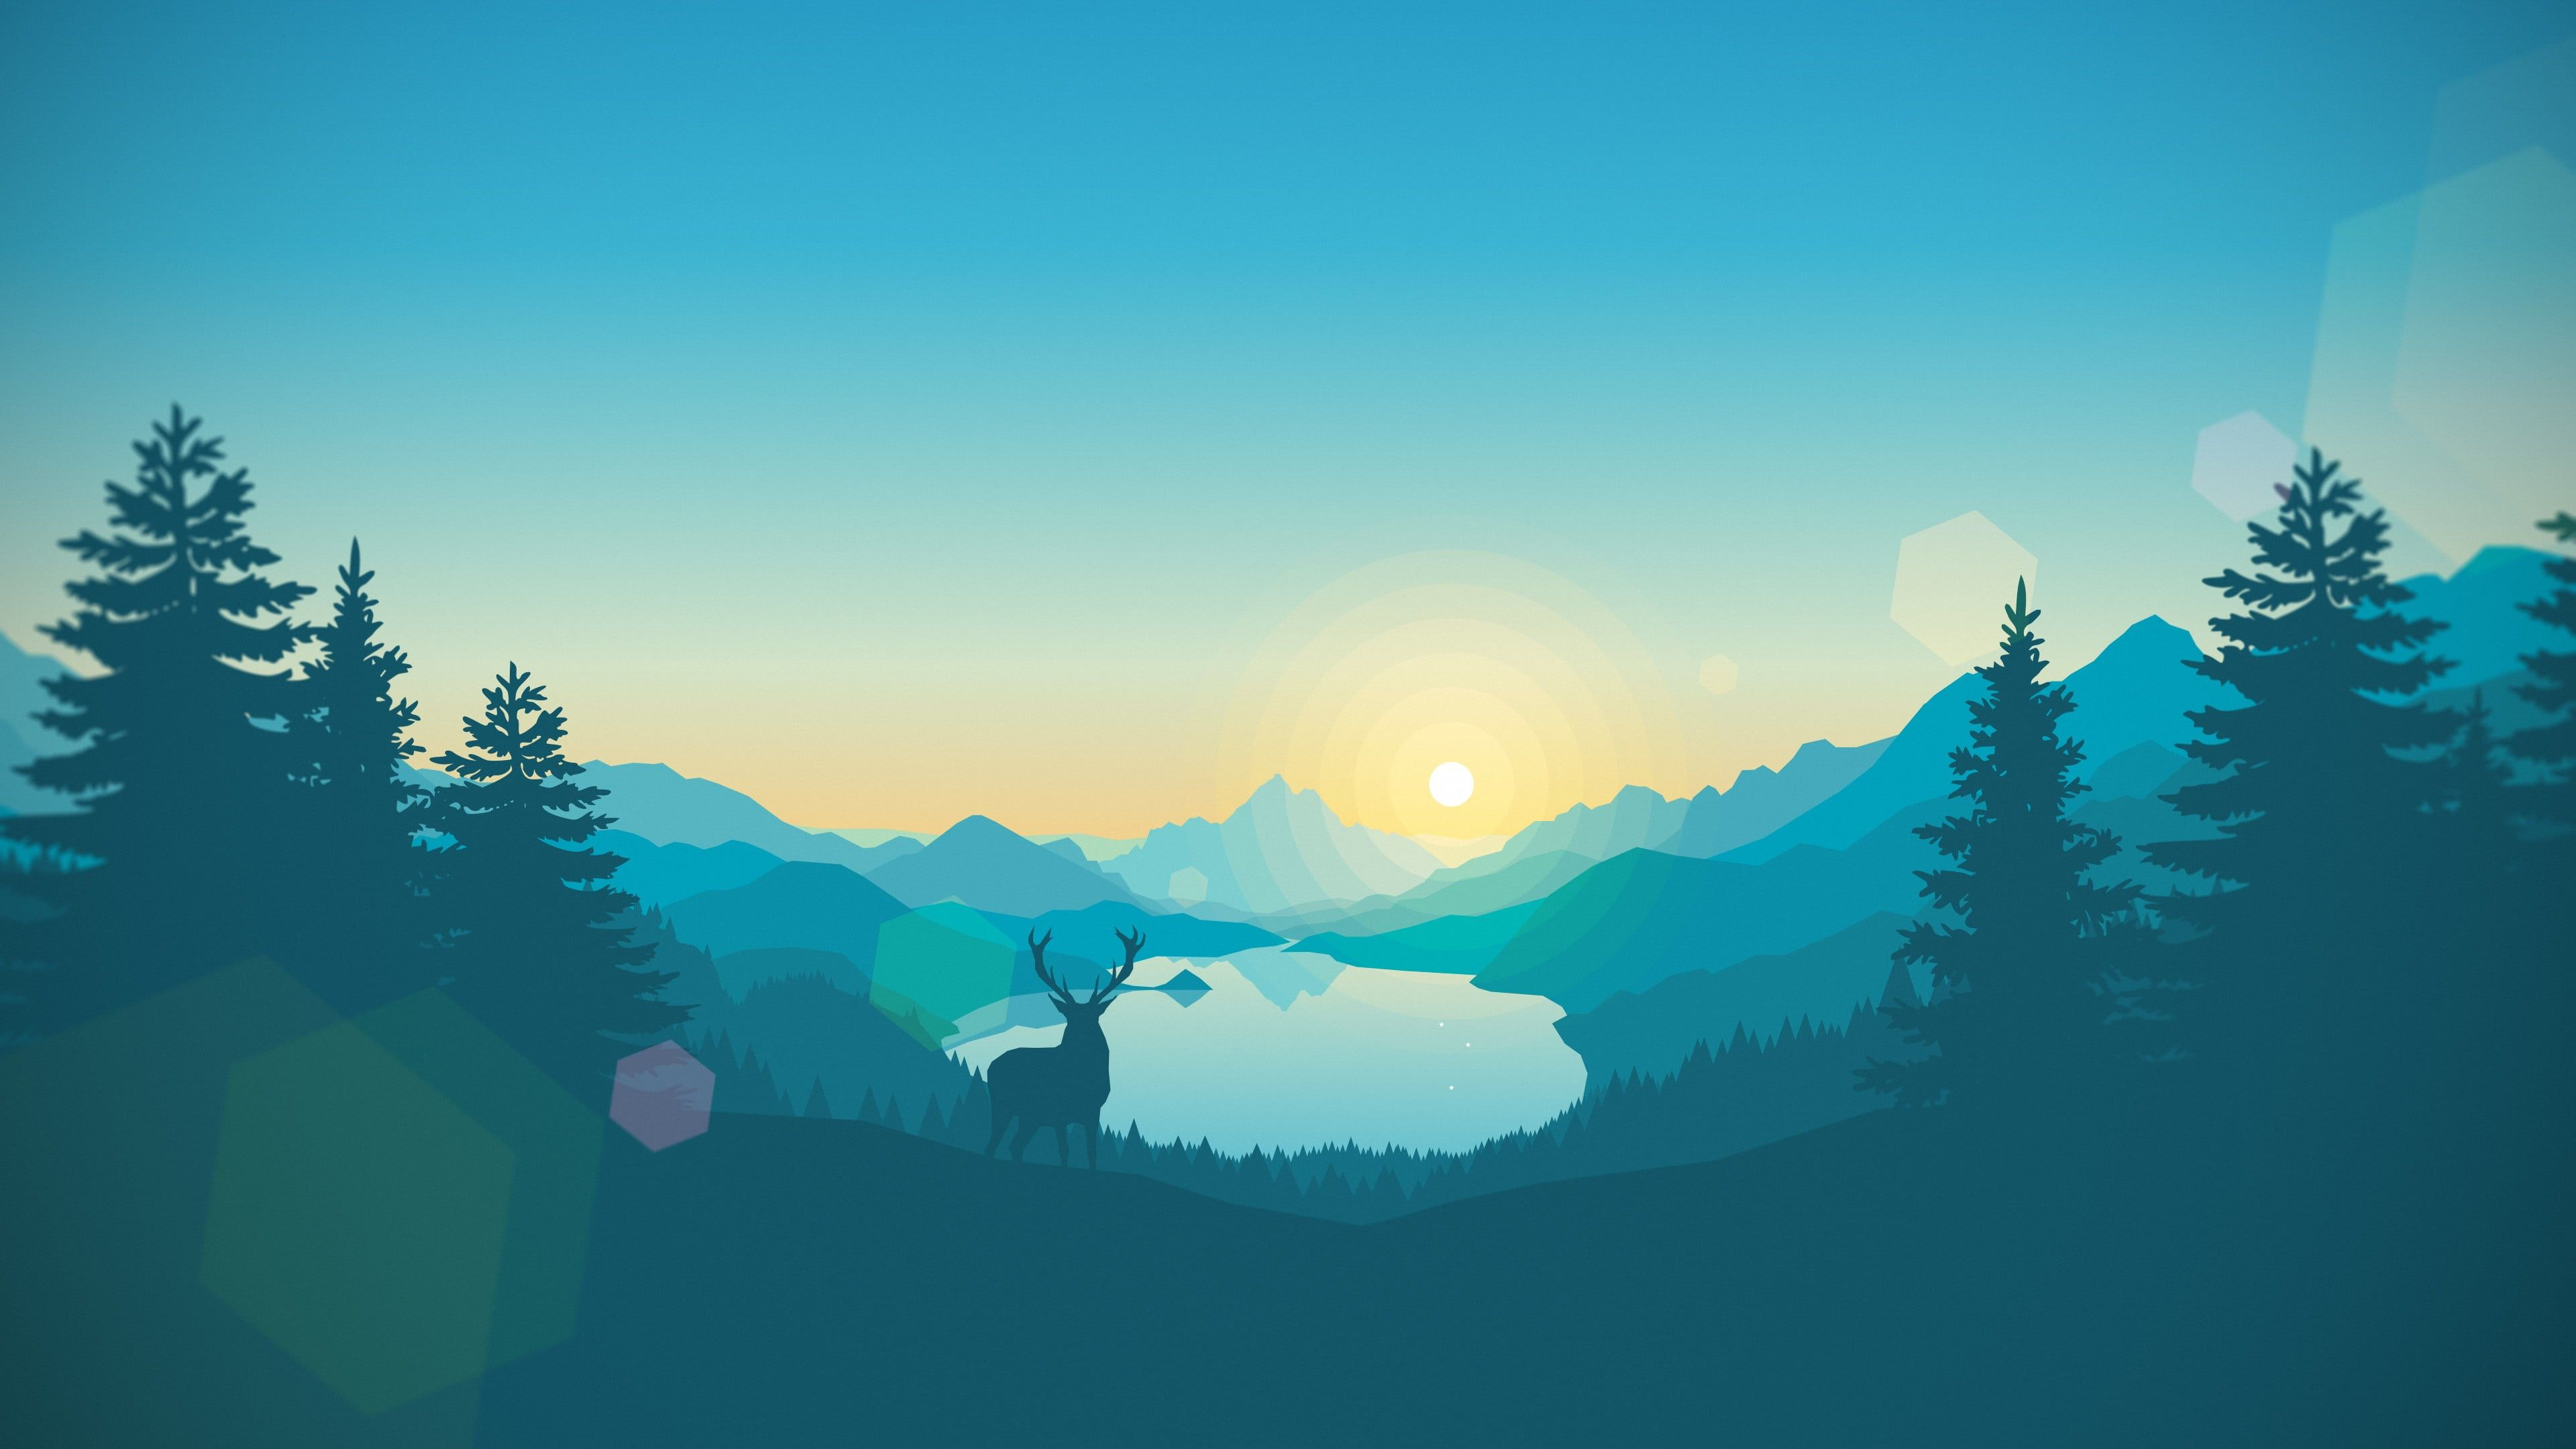 Silhouette Of Deer And Trees Painting Lake Artwork Gradient Vector Landscape Firewatch Video Games Na In 2020 Landscape Wallpaper Sunset Wallpaper Art Wallpaper